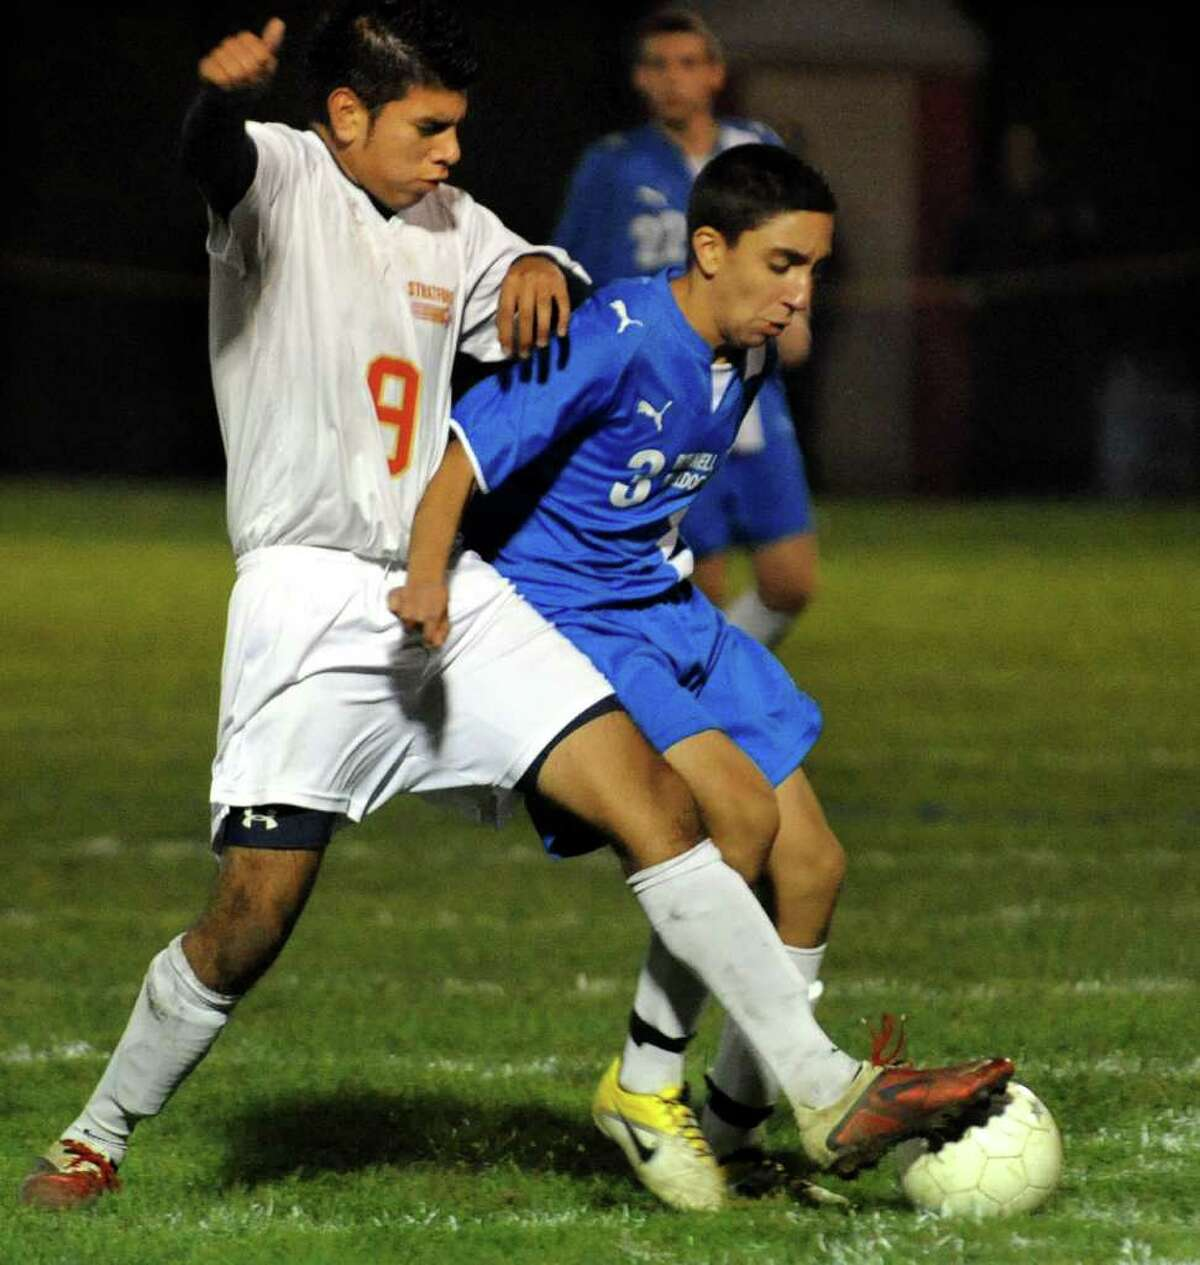 Stratford's Chris Gonzalez, left, cuts off Bunnell's #3 Anthony Amante as he goes for the ball, during boys soccer action against Stratford's in Stratford, Conn. on Wednesday October 26, 2011.